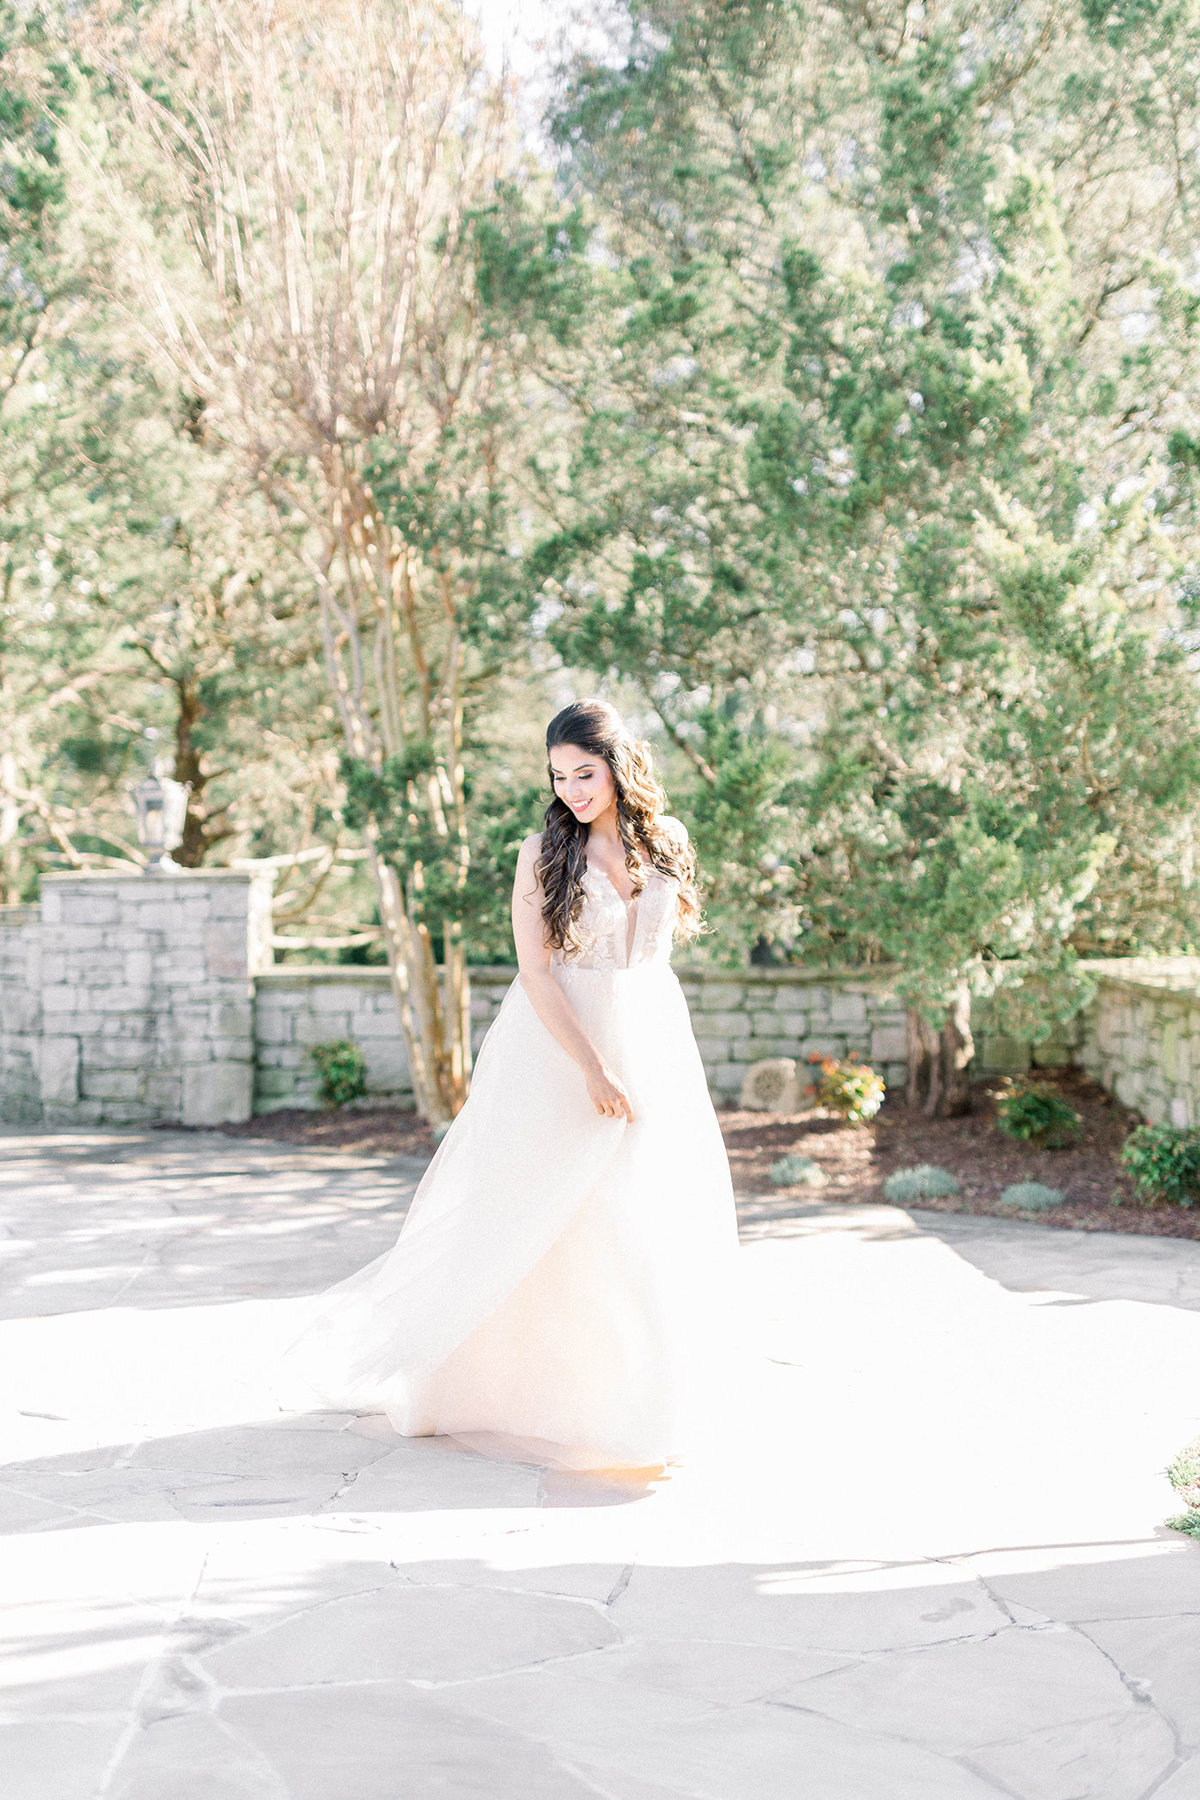 Cedarmont Nashville Editorial - Sarah Sunstrom Photography - Fine Art Wedding Photographer - 9